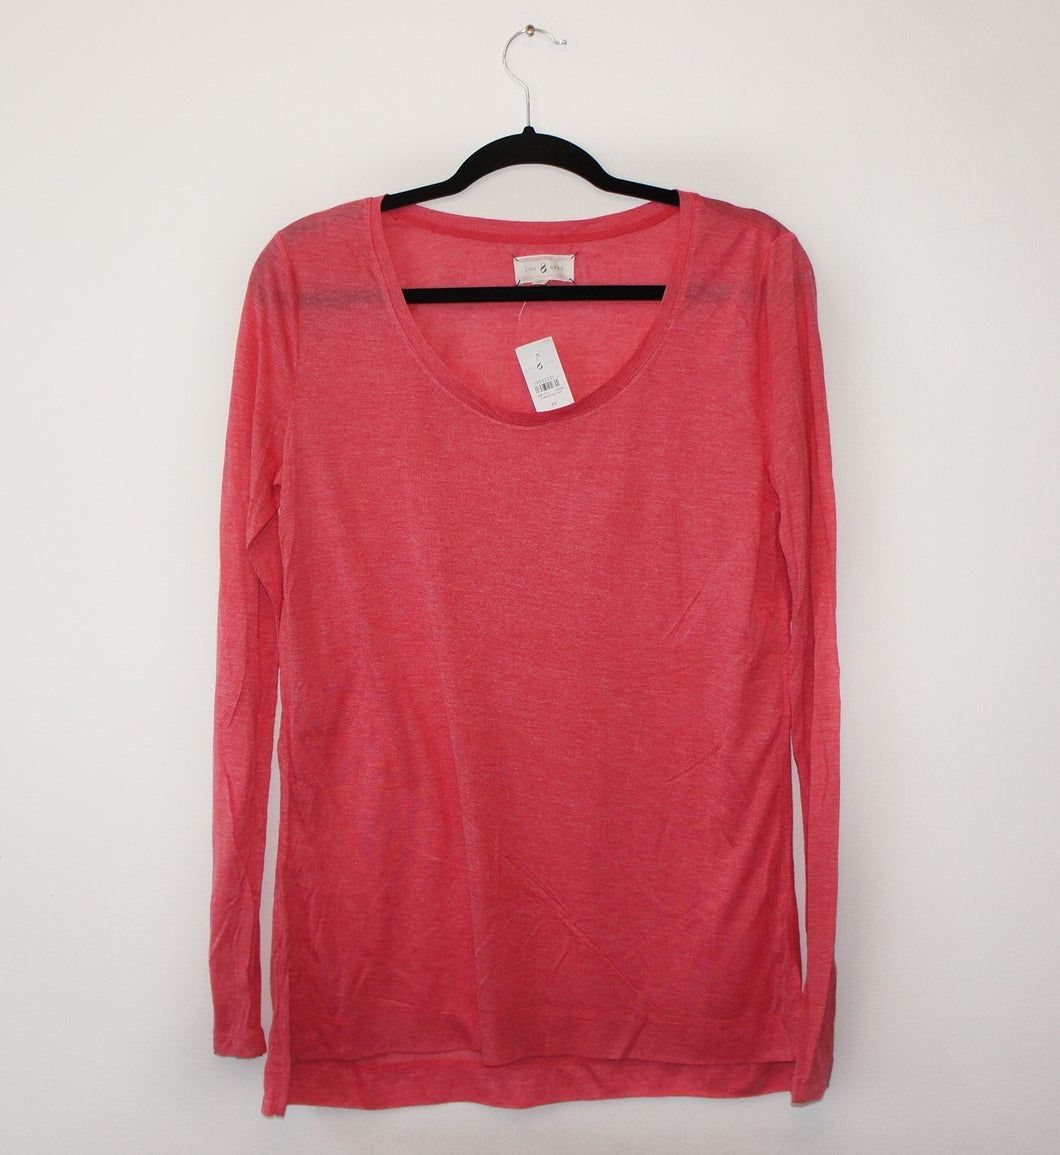 Lou&Grey pink long sleeve top